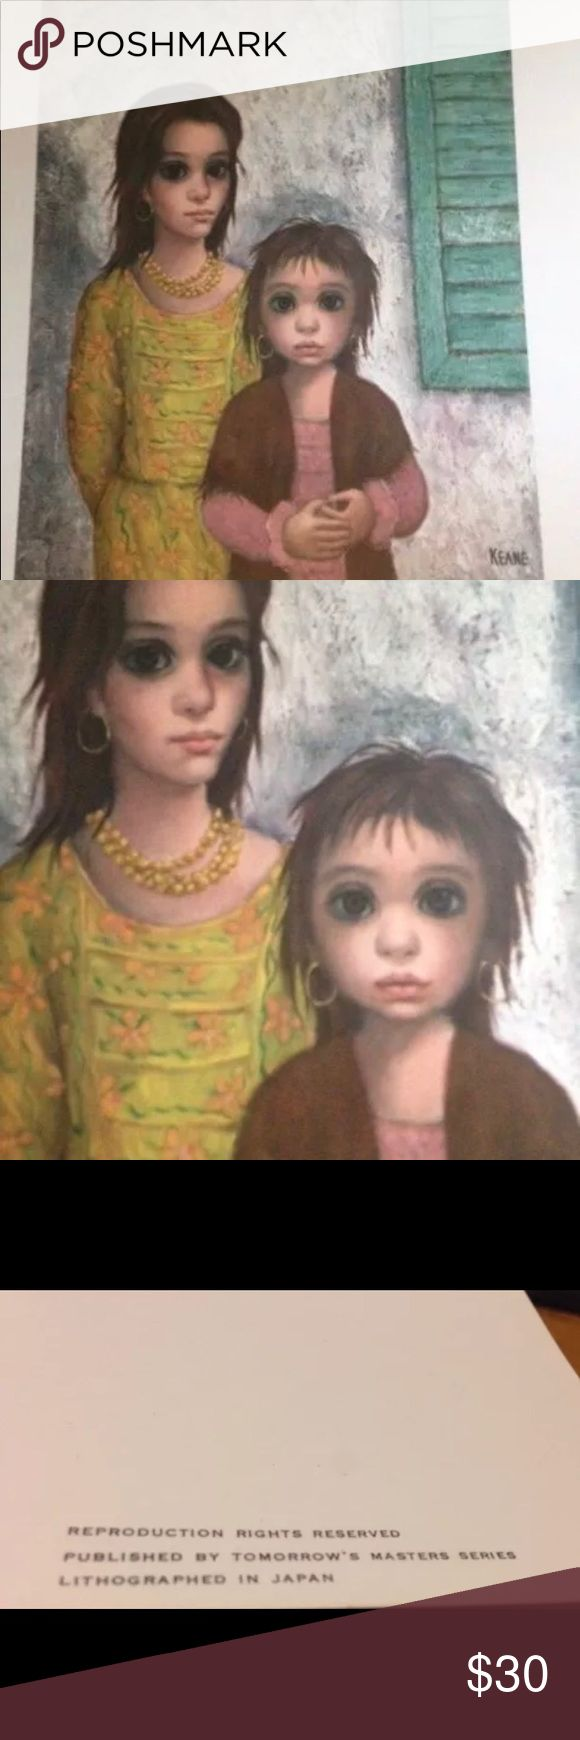 Vintage Margaret Walter Keane Print The Gypsies Big eyes. This lithium print is from the 1960's. Walter Margaret Keane Other